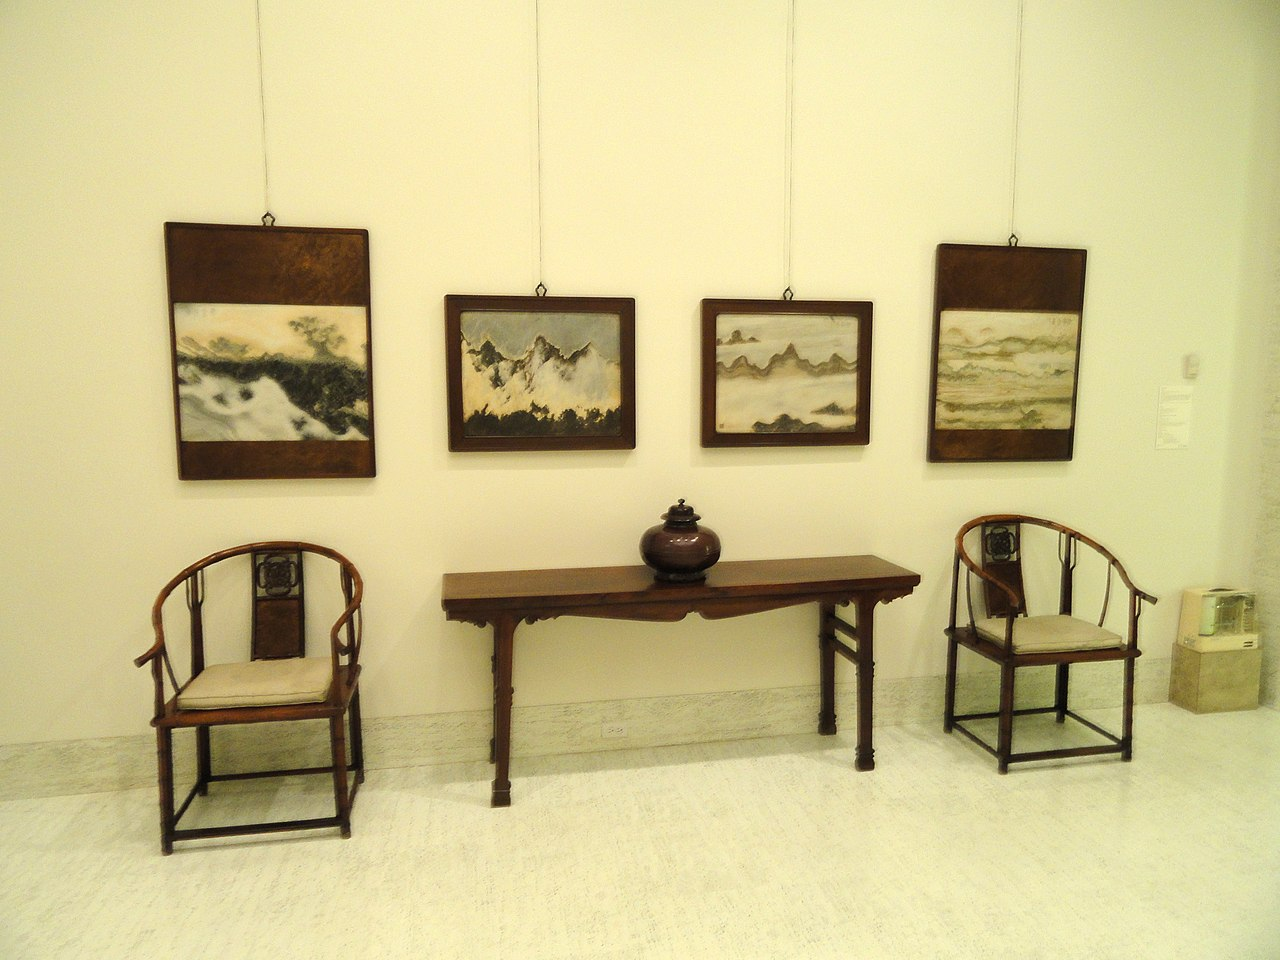 Marvelous photograph of File:Huanghuali wood furniture China Nelson Atkins Museum of Art  with #AF9A1C color and 1280x960 pixels